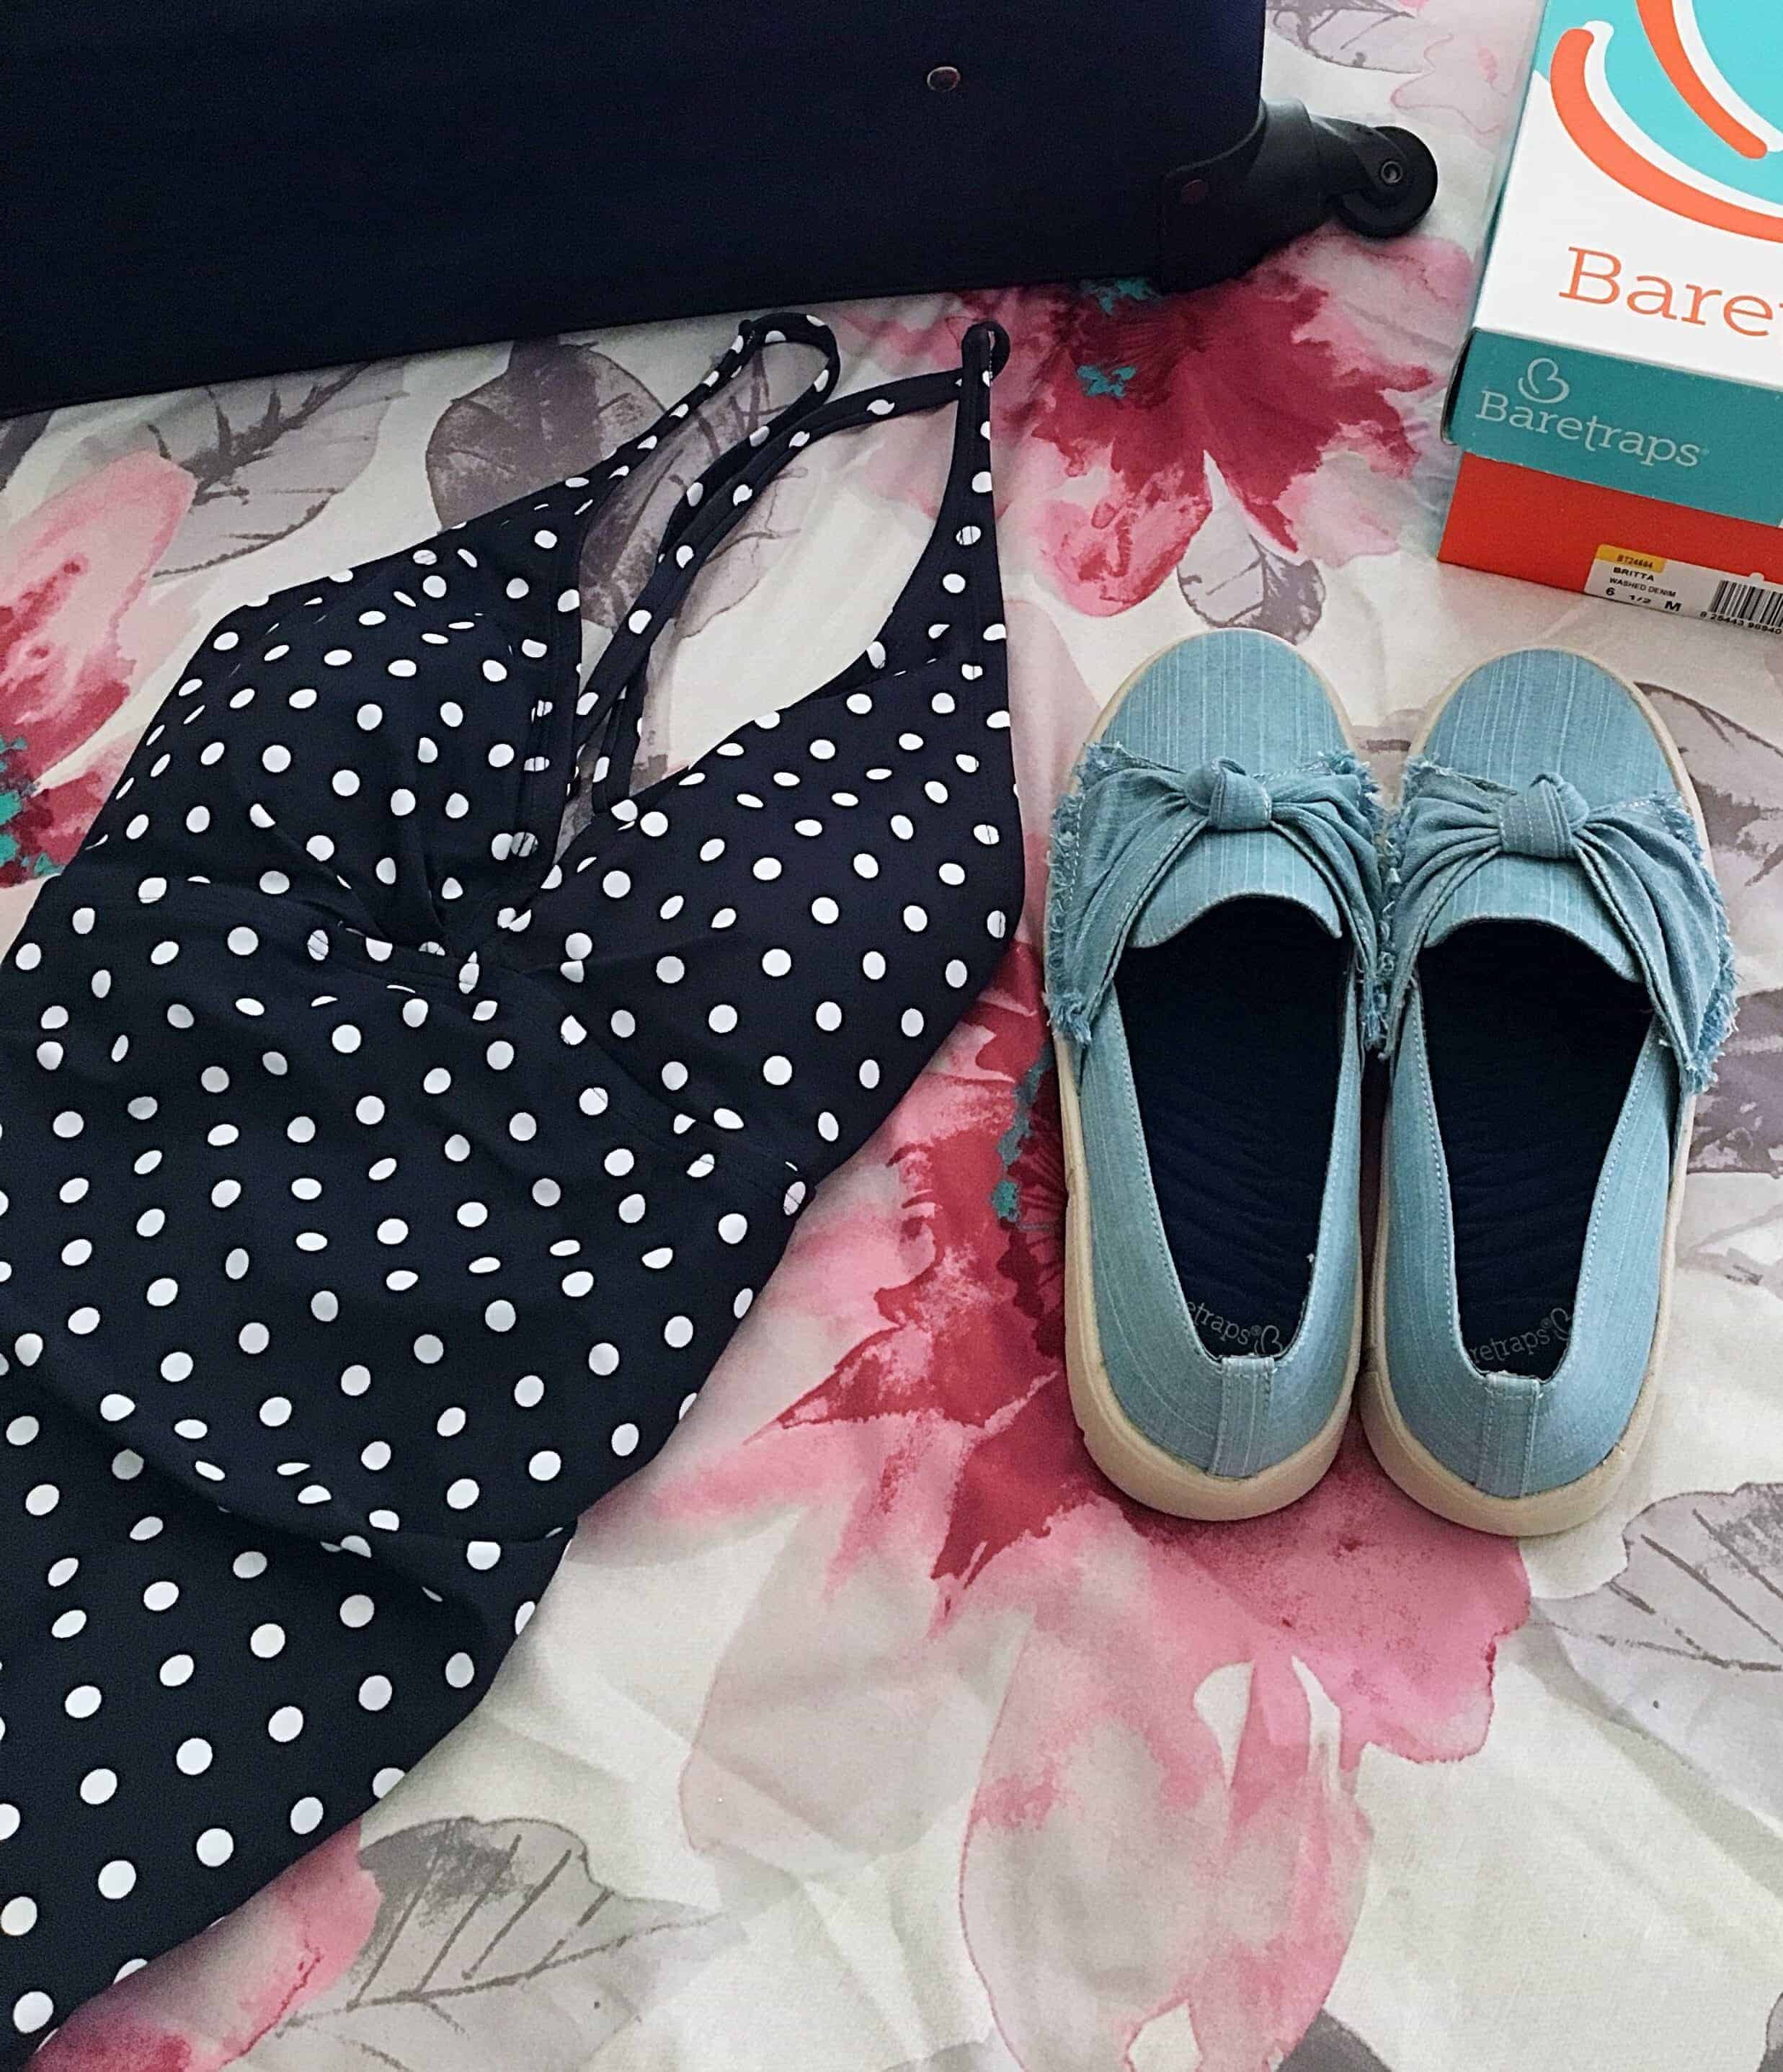 Planning your next summer trip? Then you'll love this ultimate guide that covers EXACTLY what to pack in your suitcase for your summer vacation. This vacation packing list for women covers exactly what must-have fashion items you'll need like a swimsuit, a hat, and a comfy pair of shoes! #sponsored #baretraps #summervacation #packingtips #vacationpacking #travel #vacationessentials